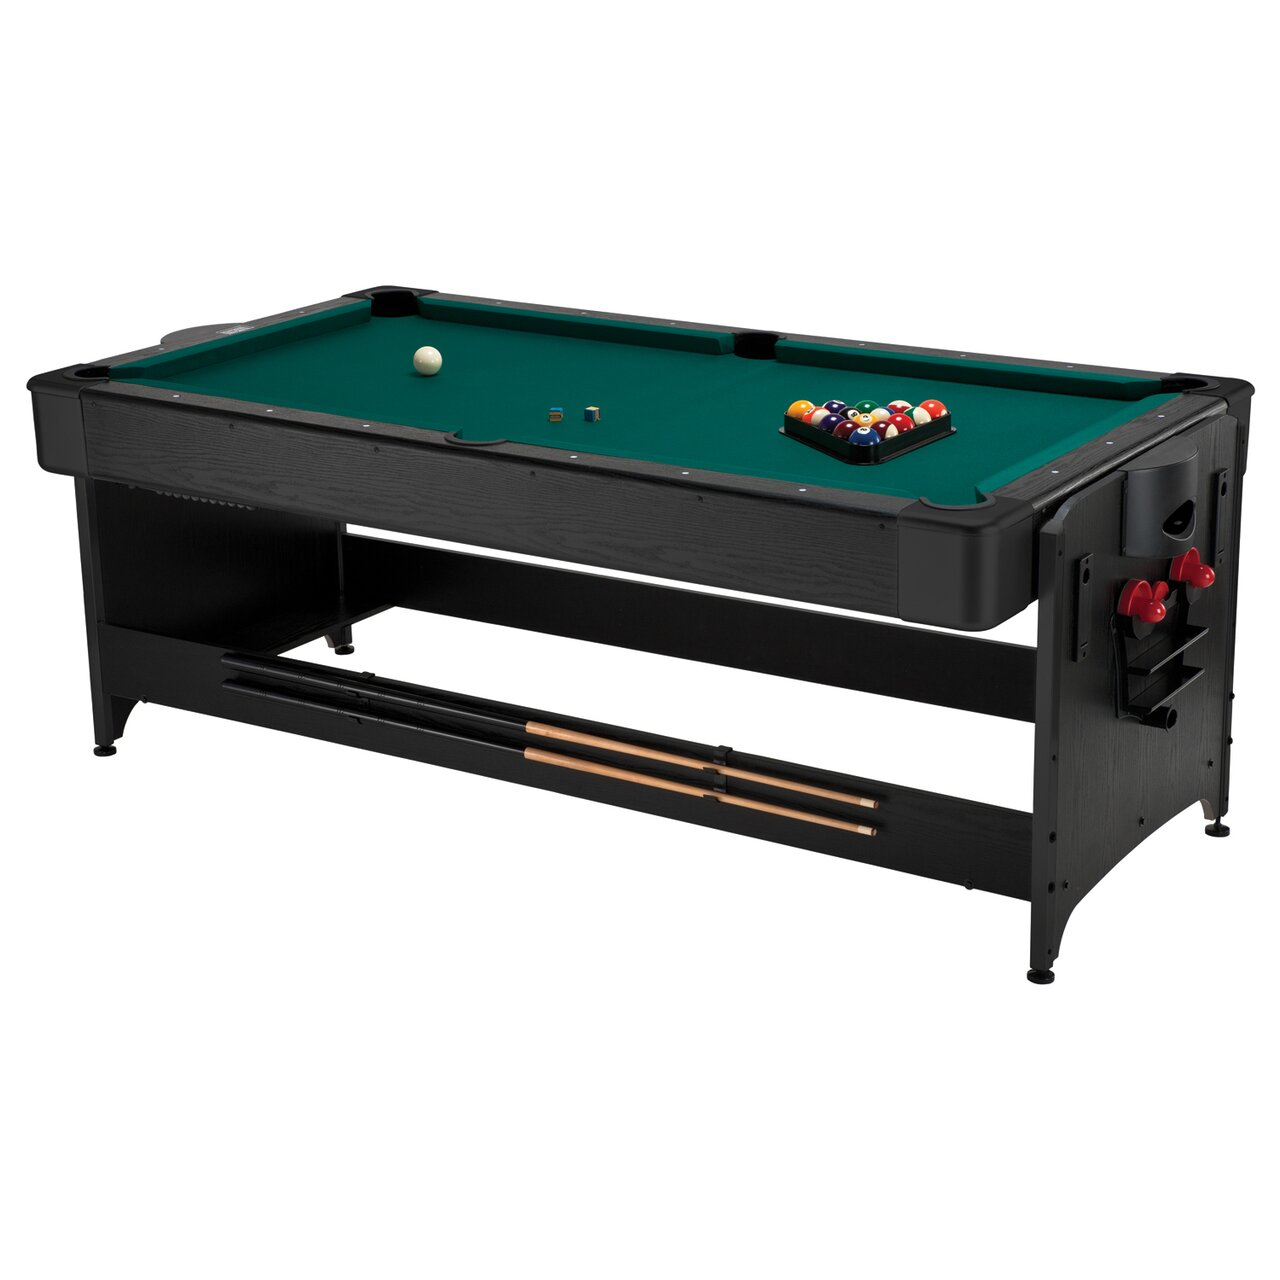 Best Interior Ideas kingofficeus : GLD Products Fat Cat Pockey25C22599 3 in 1 Game Table from kingoffice.us size 1280 x 1280 jpeg 85kB